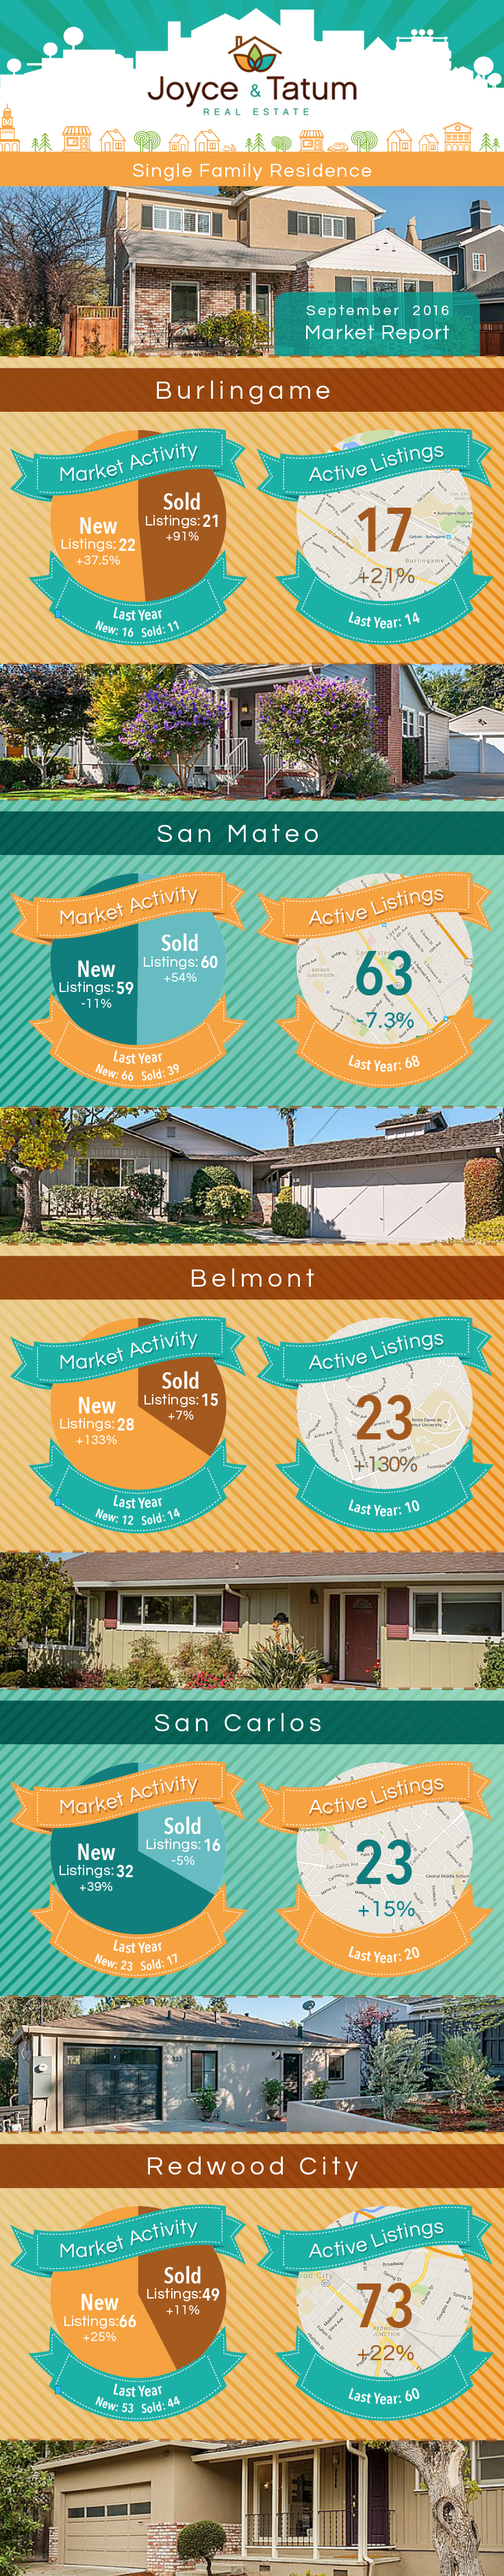 infographic for the September 2015-2016 Mid-Peninsula Real Estate Market Stats for Burlingame, San Mateo, Redwood City, San Carlos, and Belmont